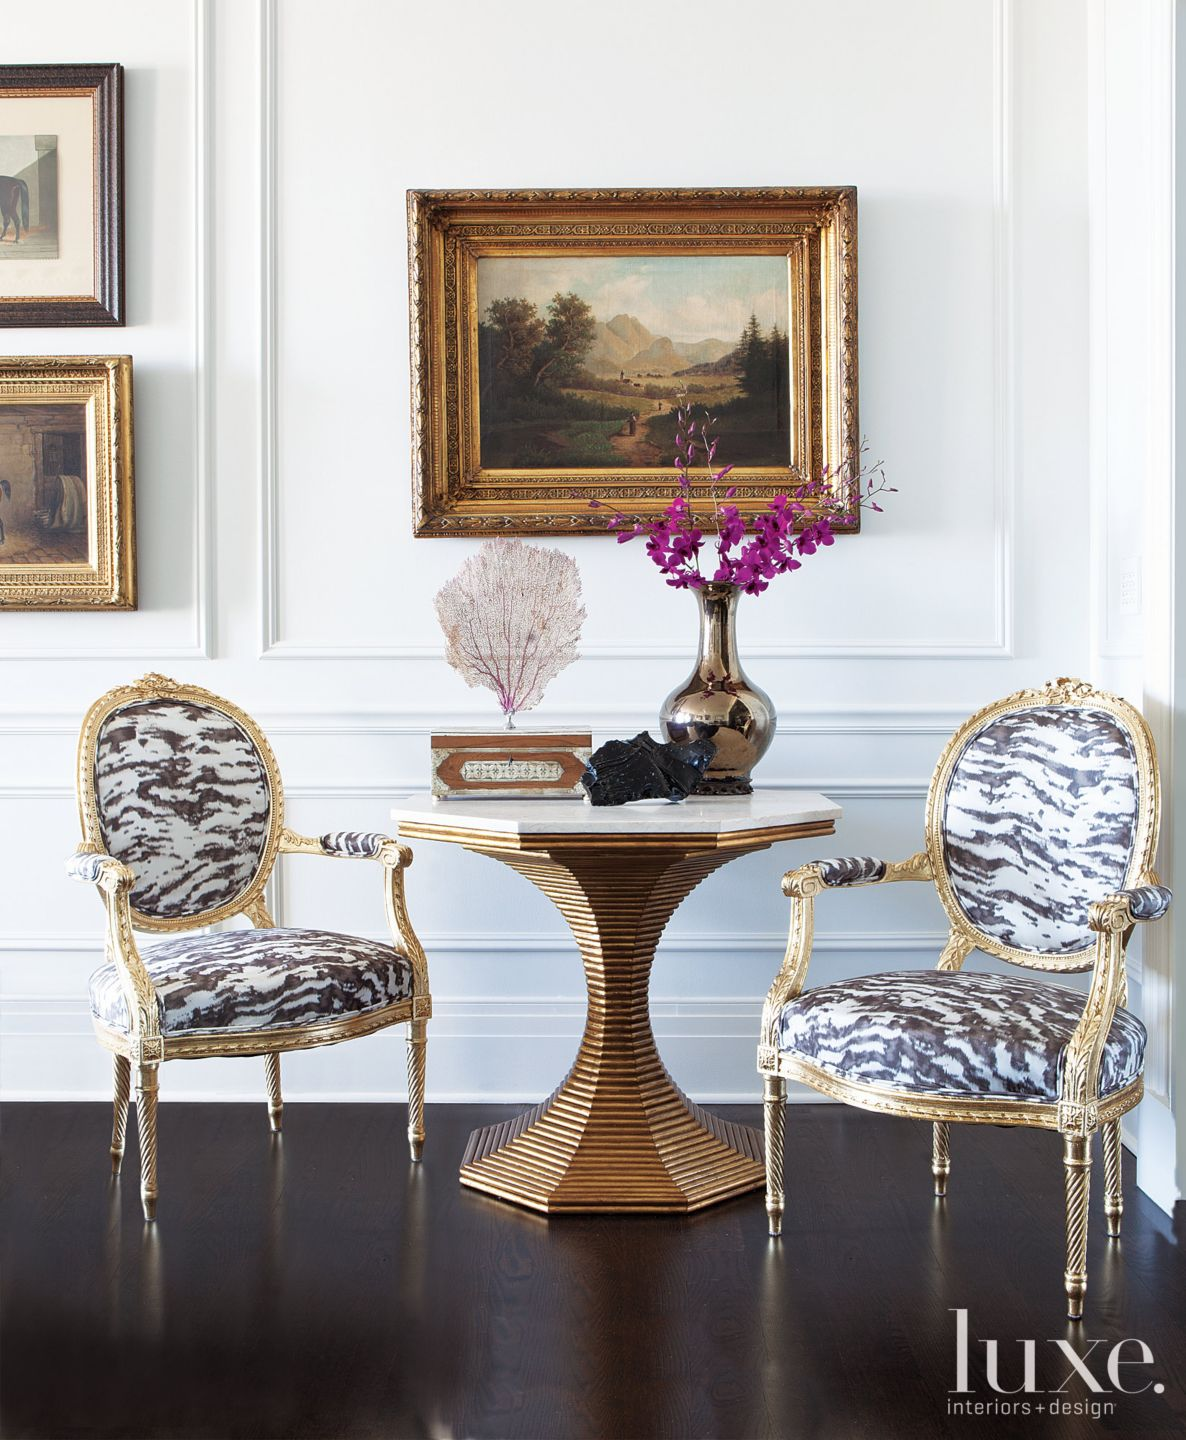 Eclectic White Sitting Area with Zebra-Print Chairs